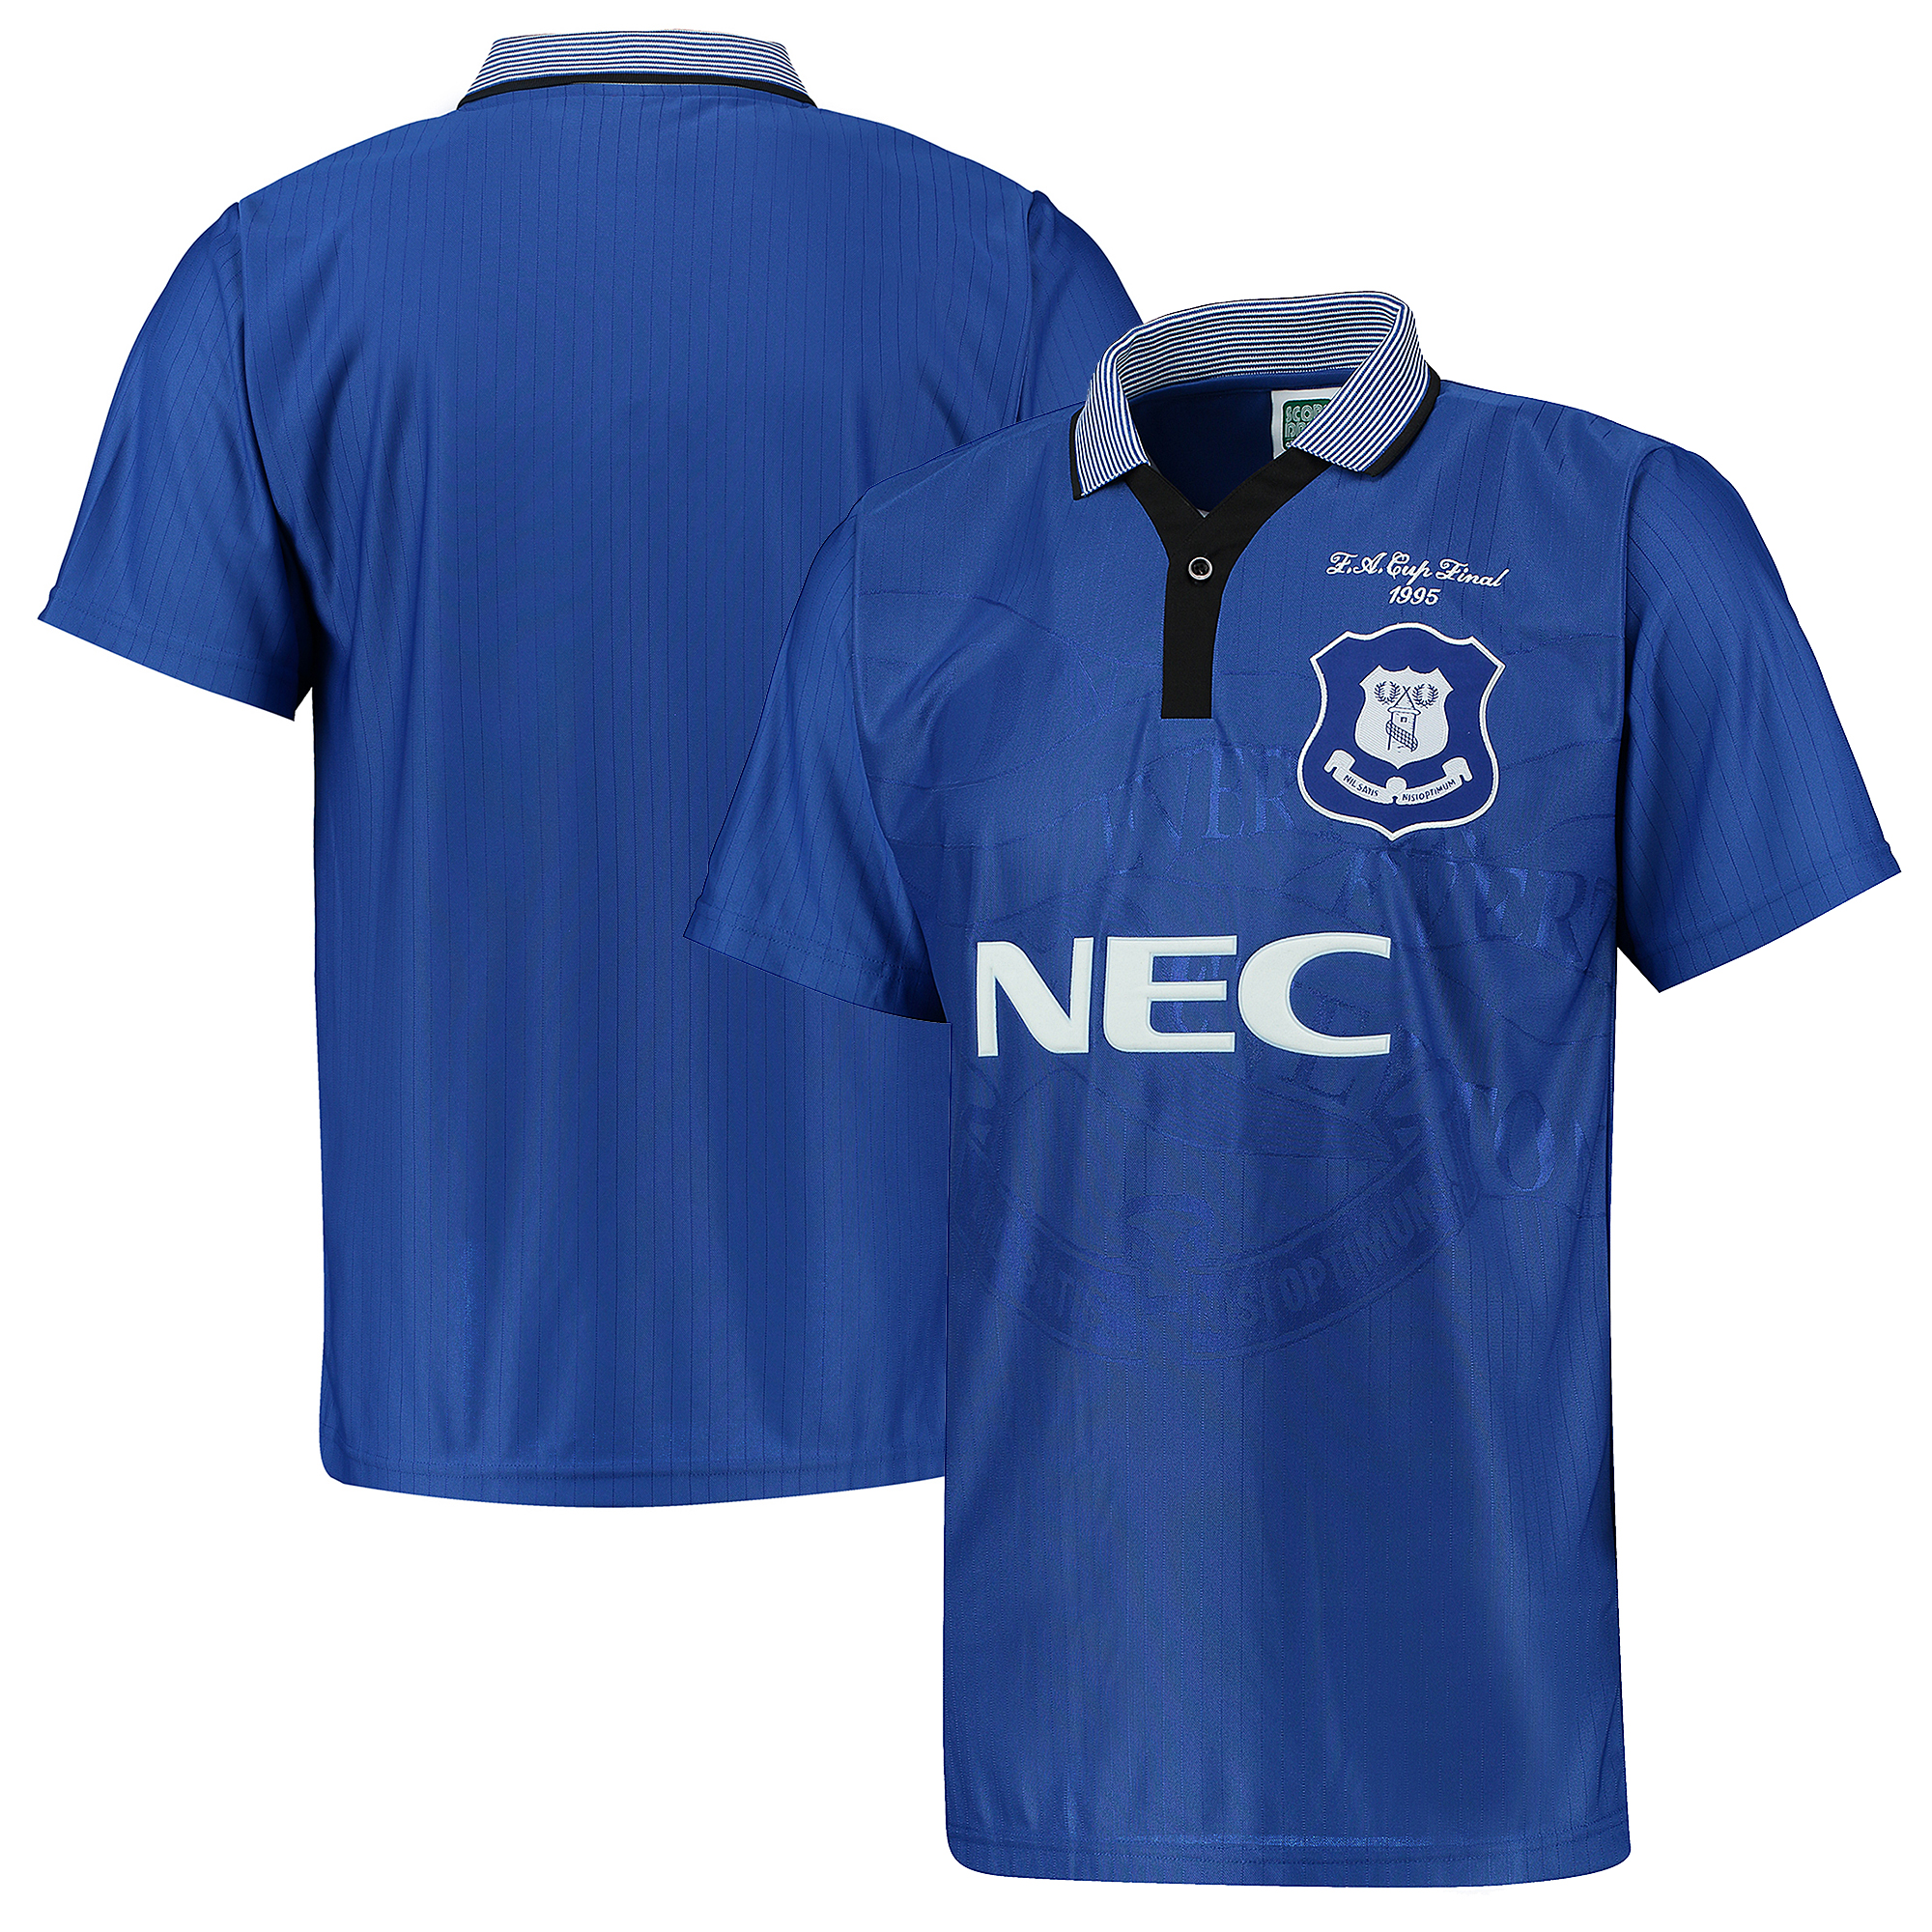 Image of Everton 1995 FA Cup Winners Shirt - Blue